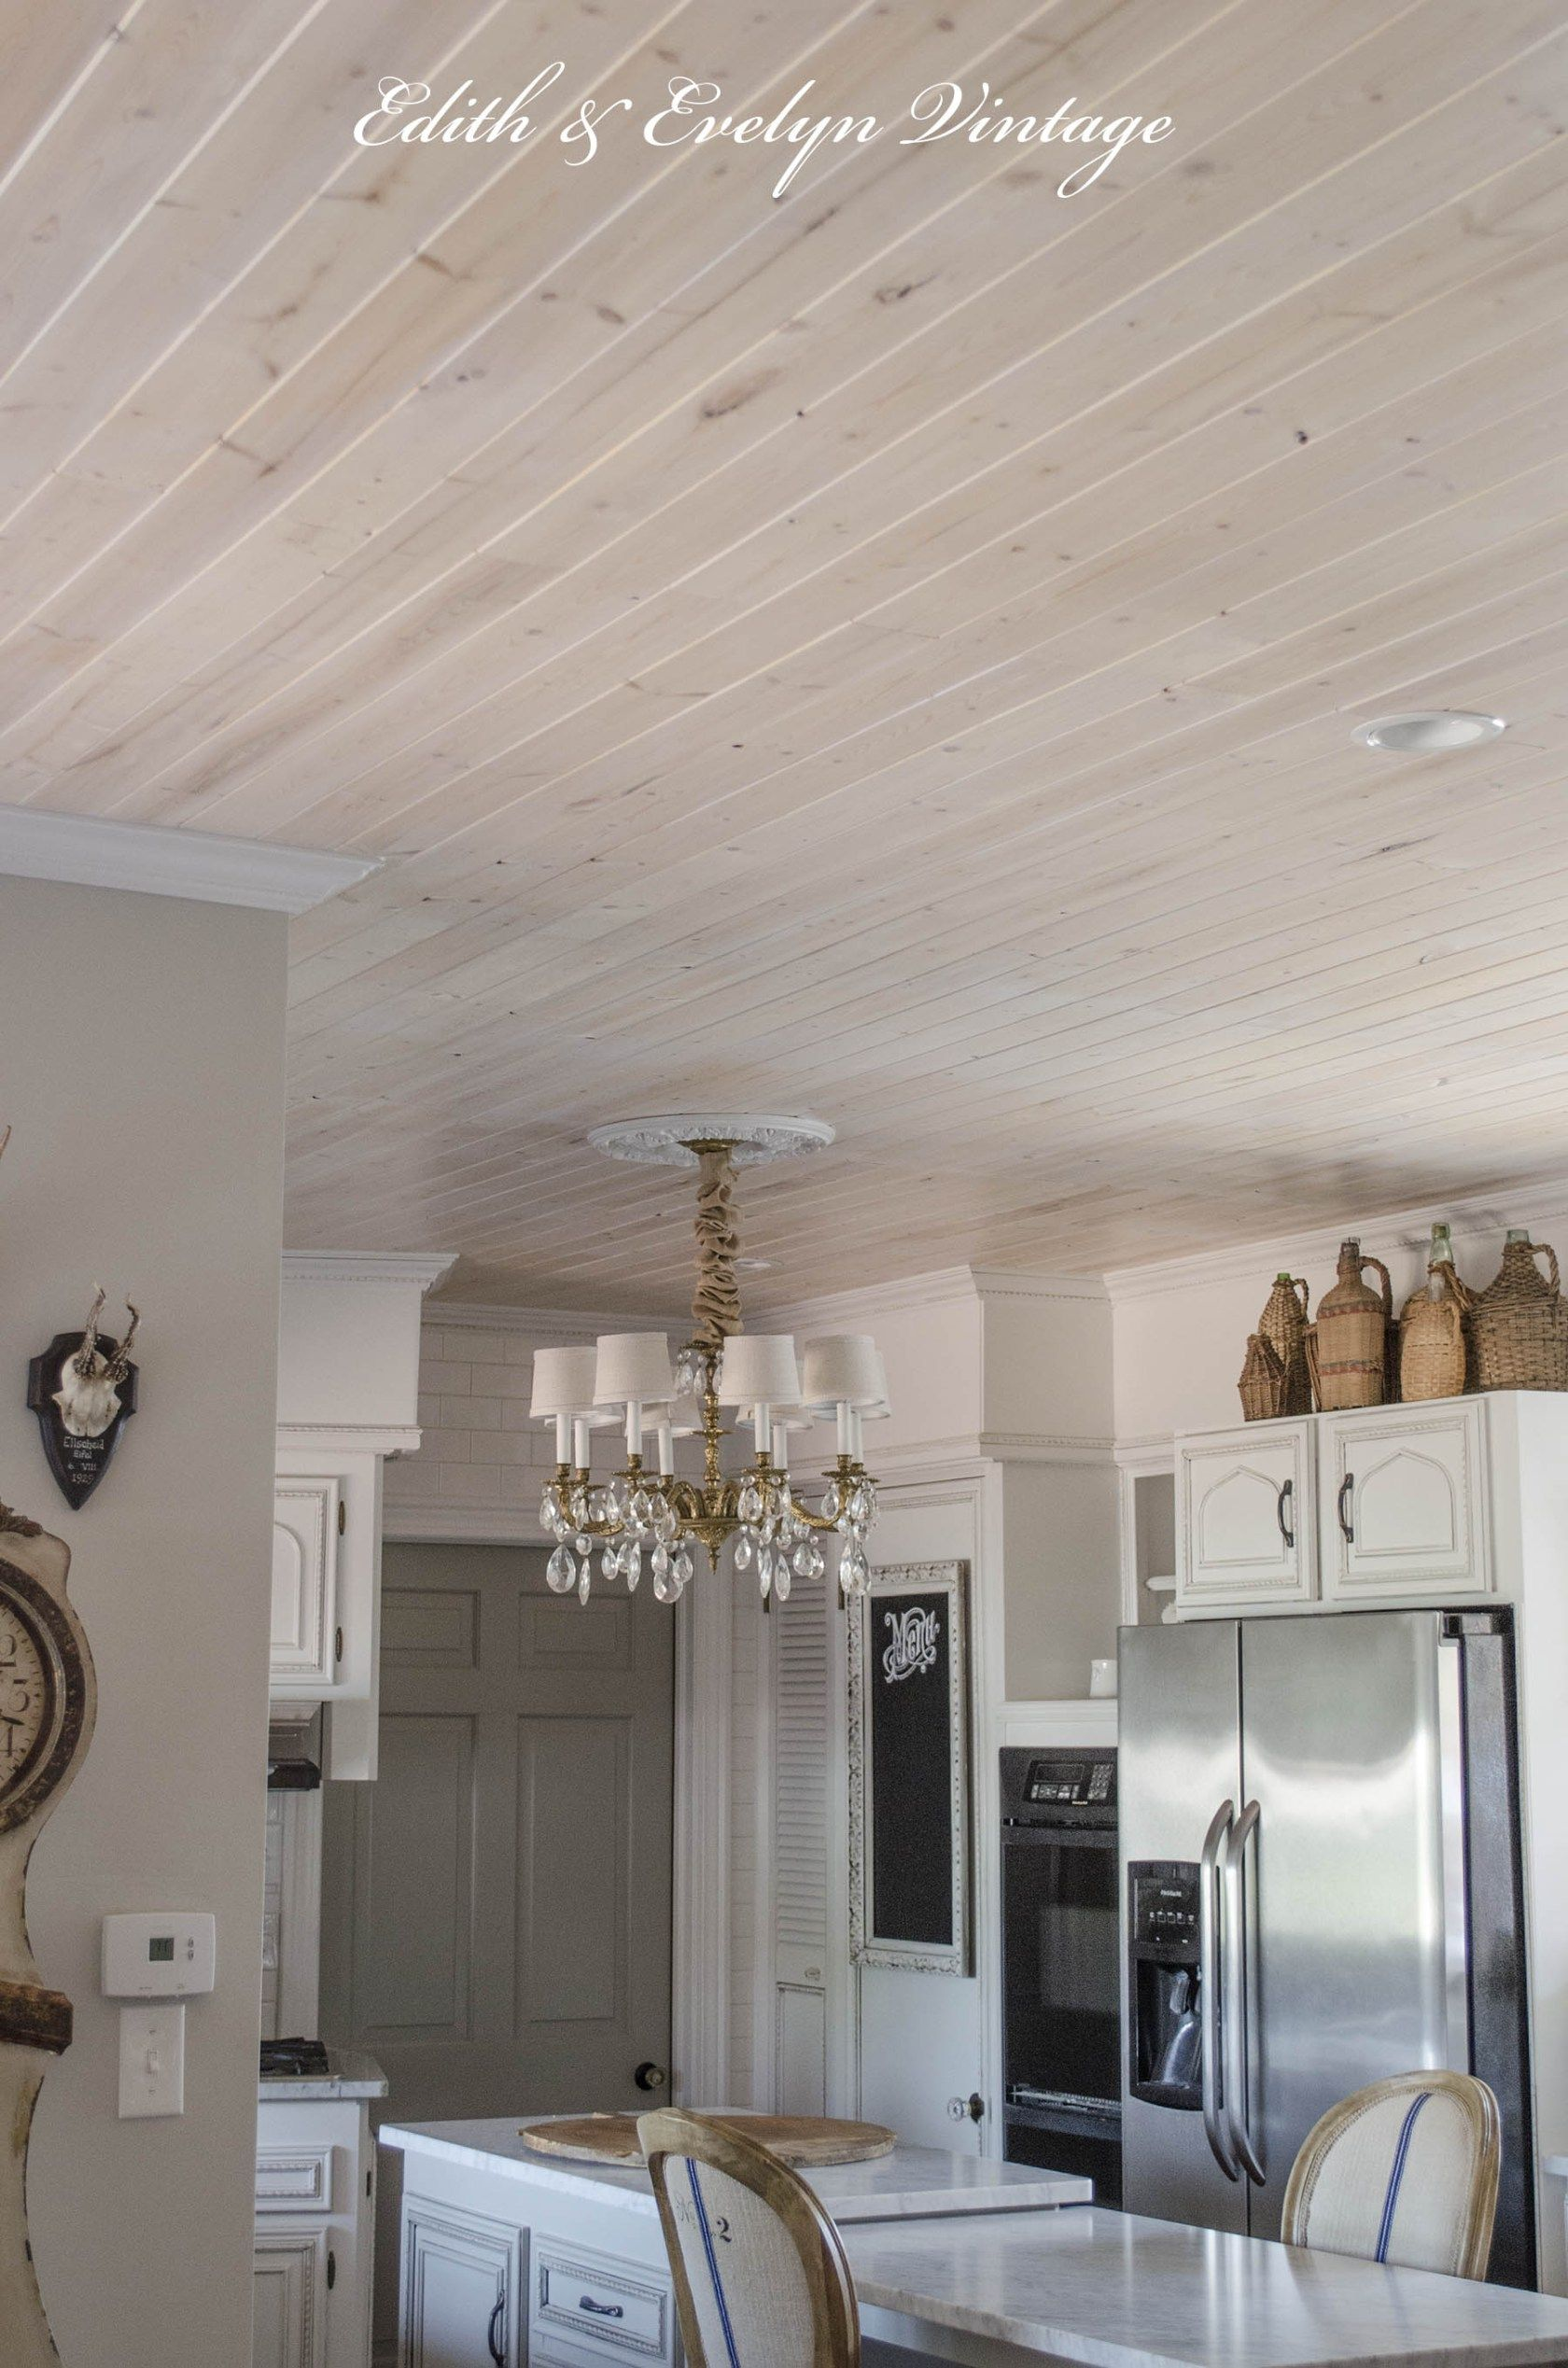 planked ceiling in kitchen with pickling stain. how to plank a